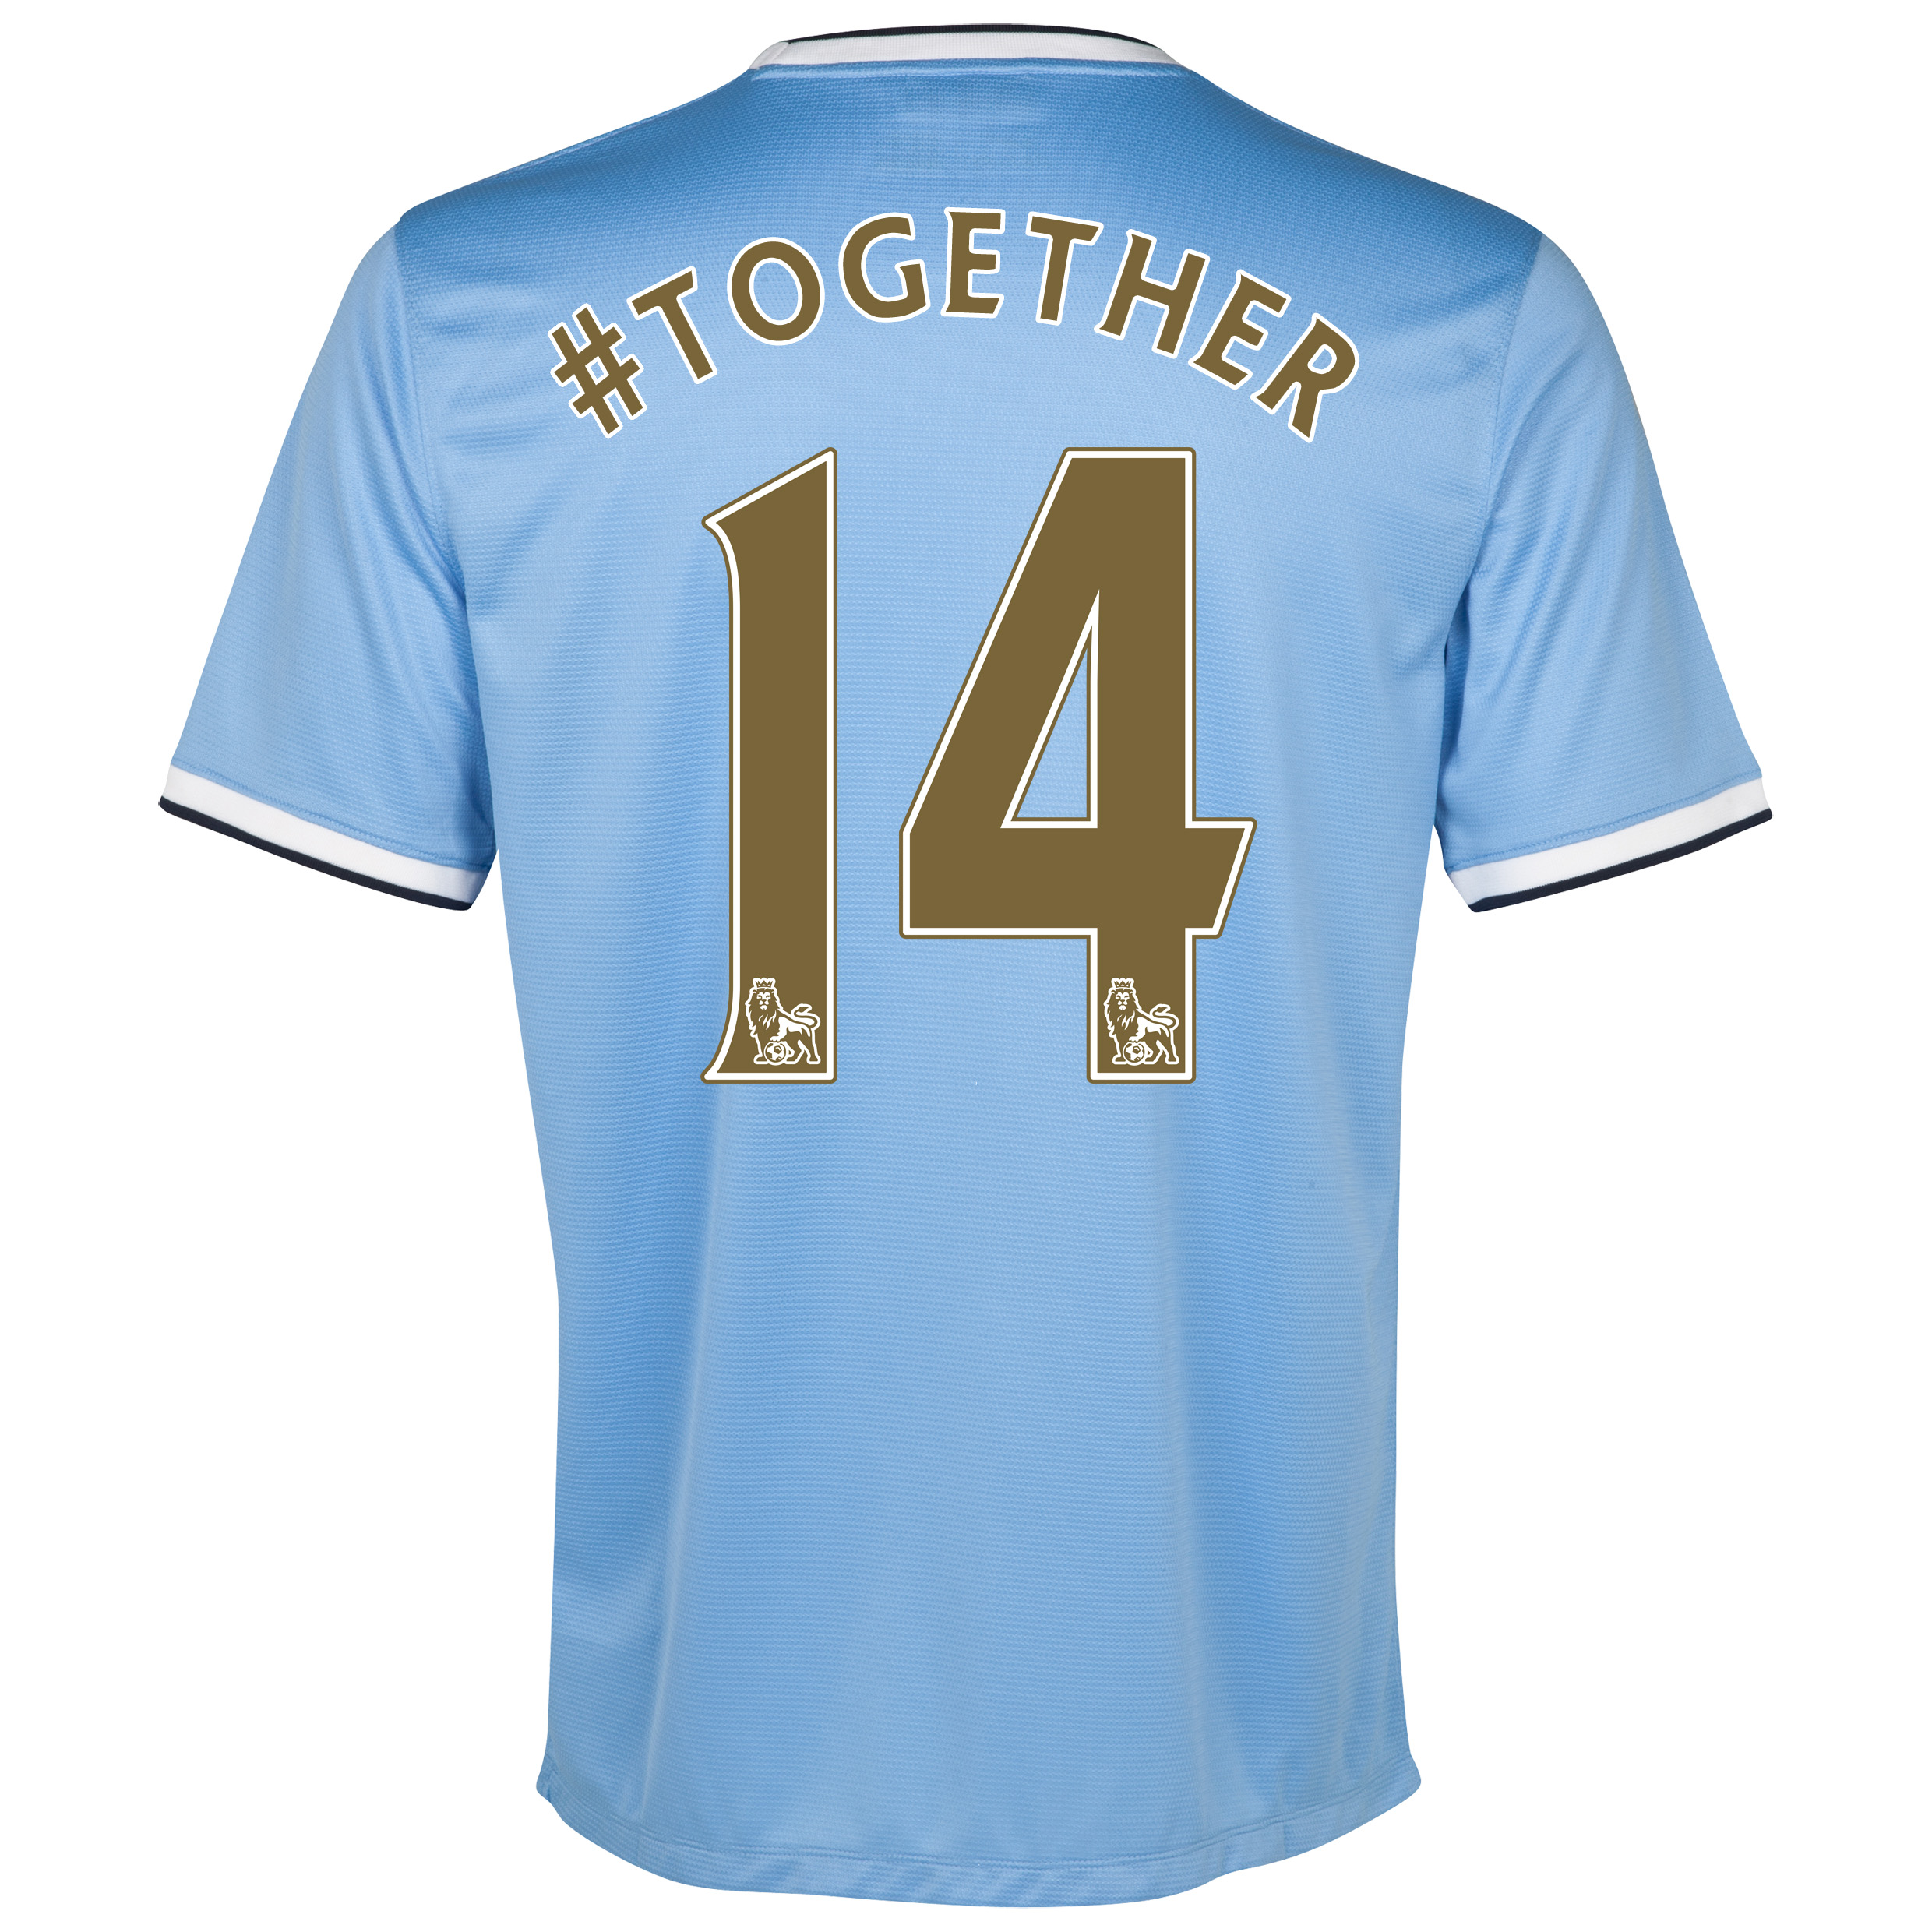 Manchester City Home Shirt 2013/14 with #together 14 printing